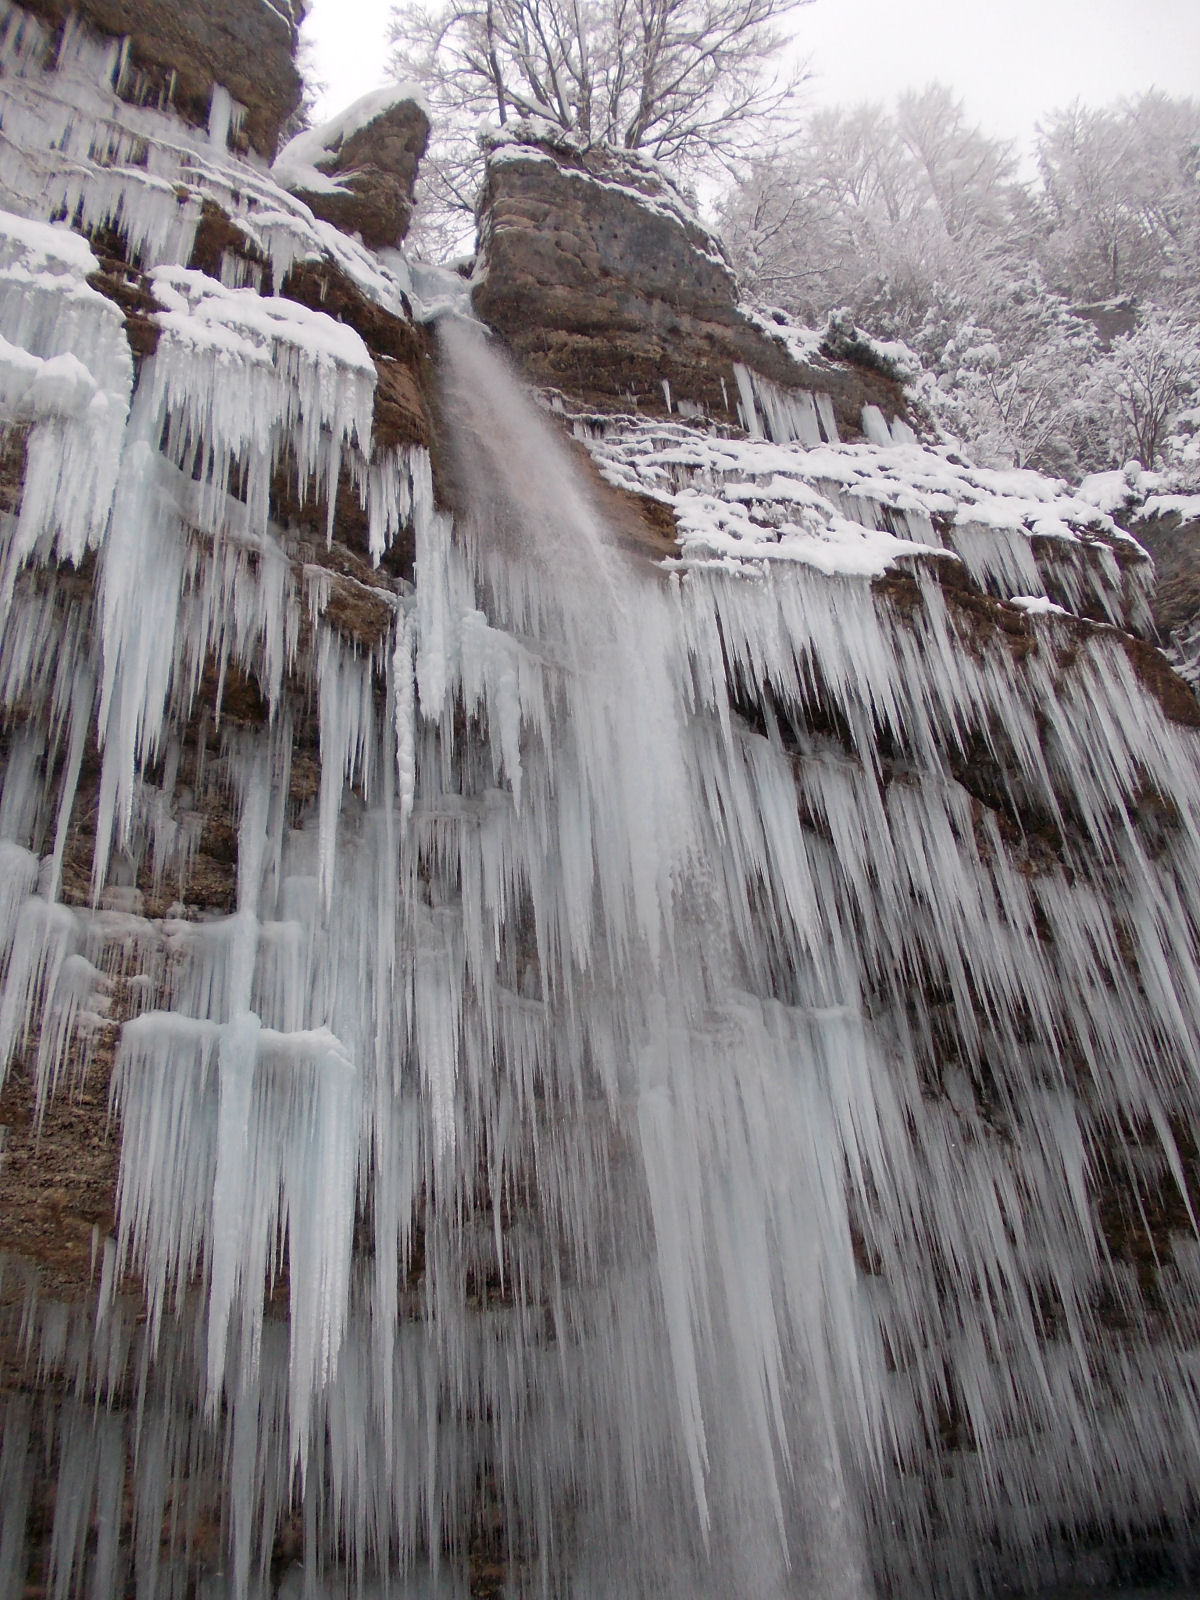 Pericnik waterfall in winter